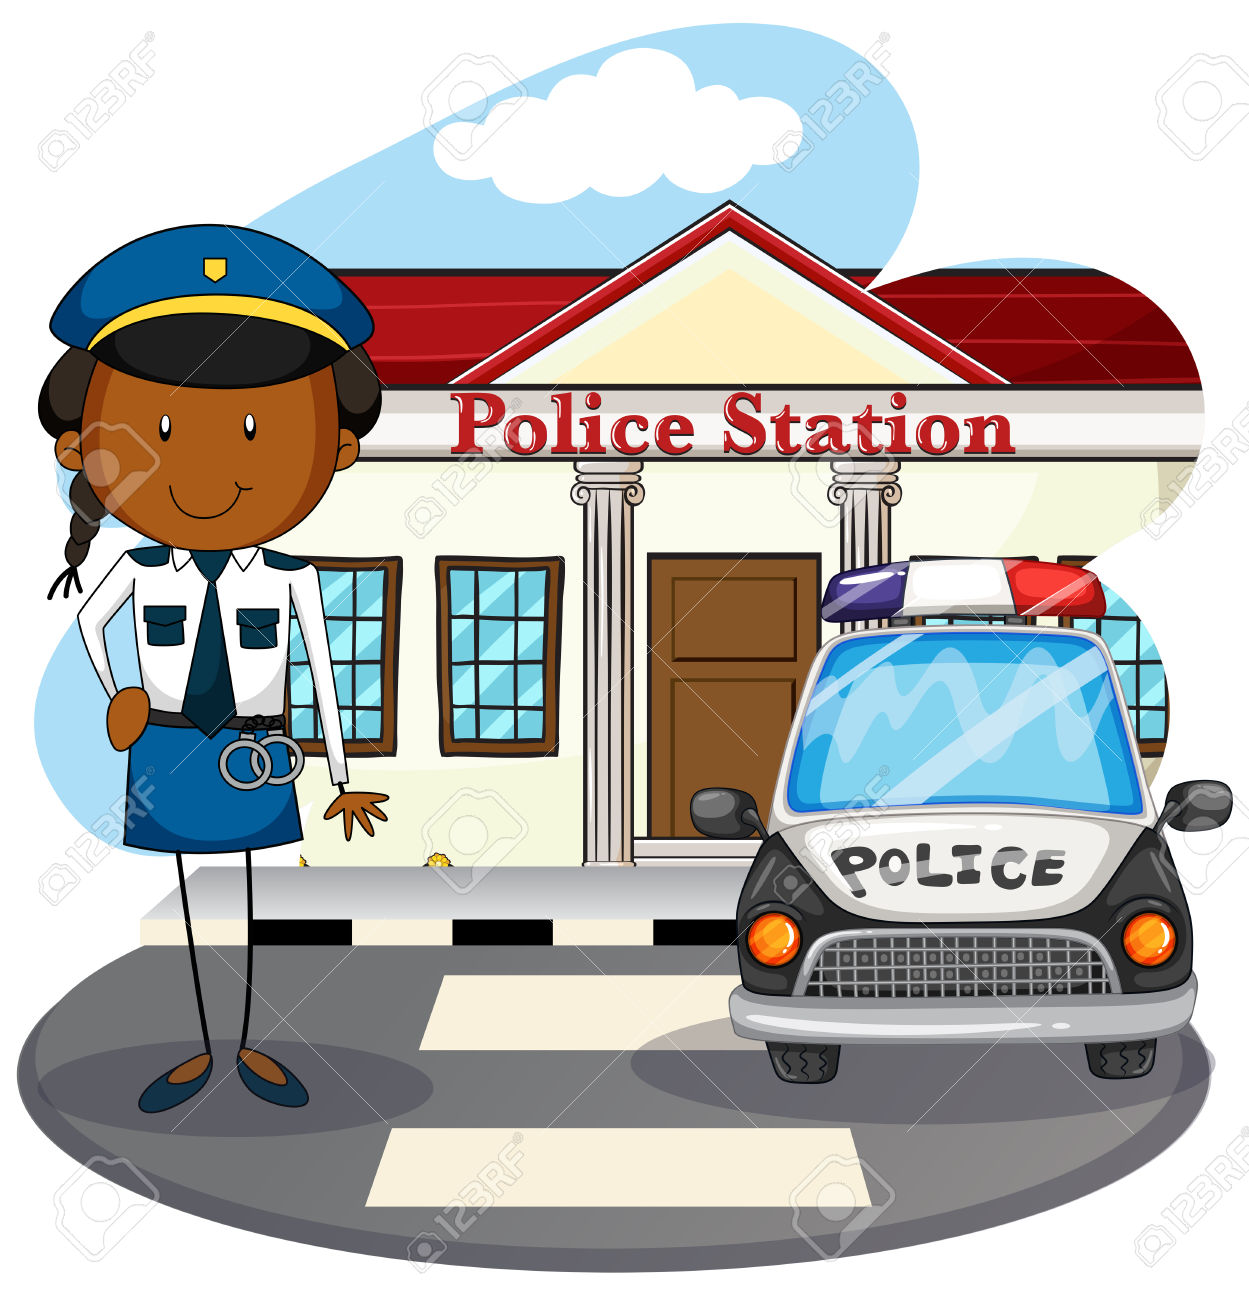 Police station with police car clipart svg download Police Station Clipart & Police Station Clip Art Images ... svg download